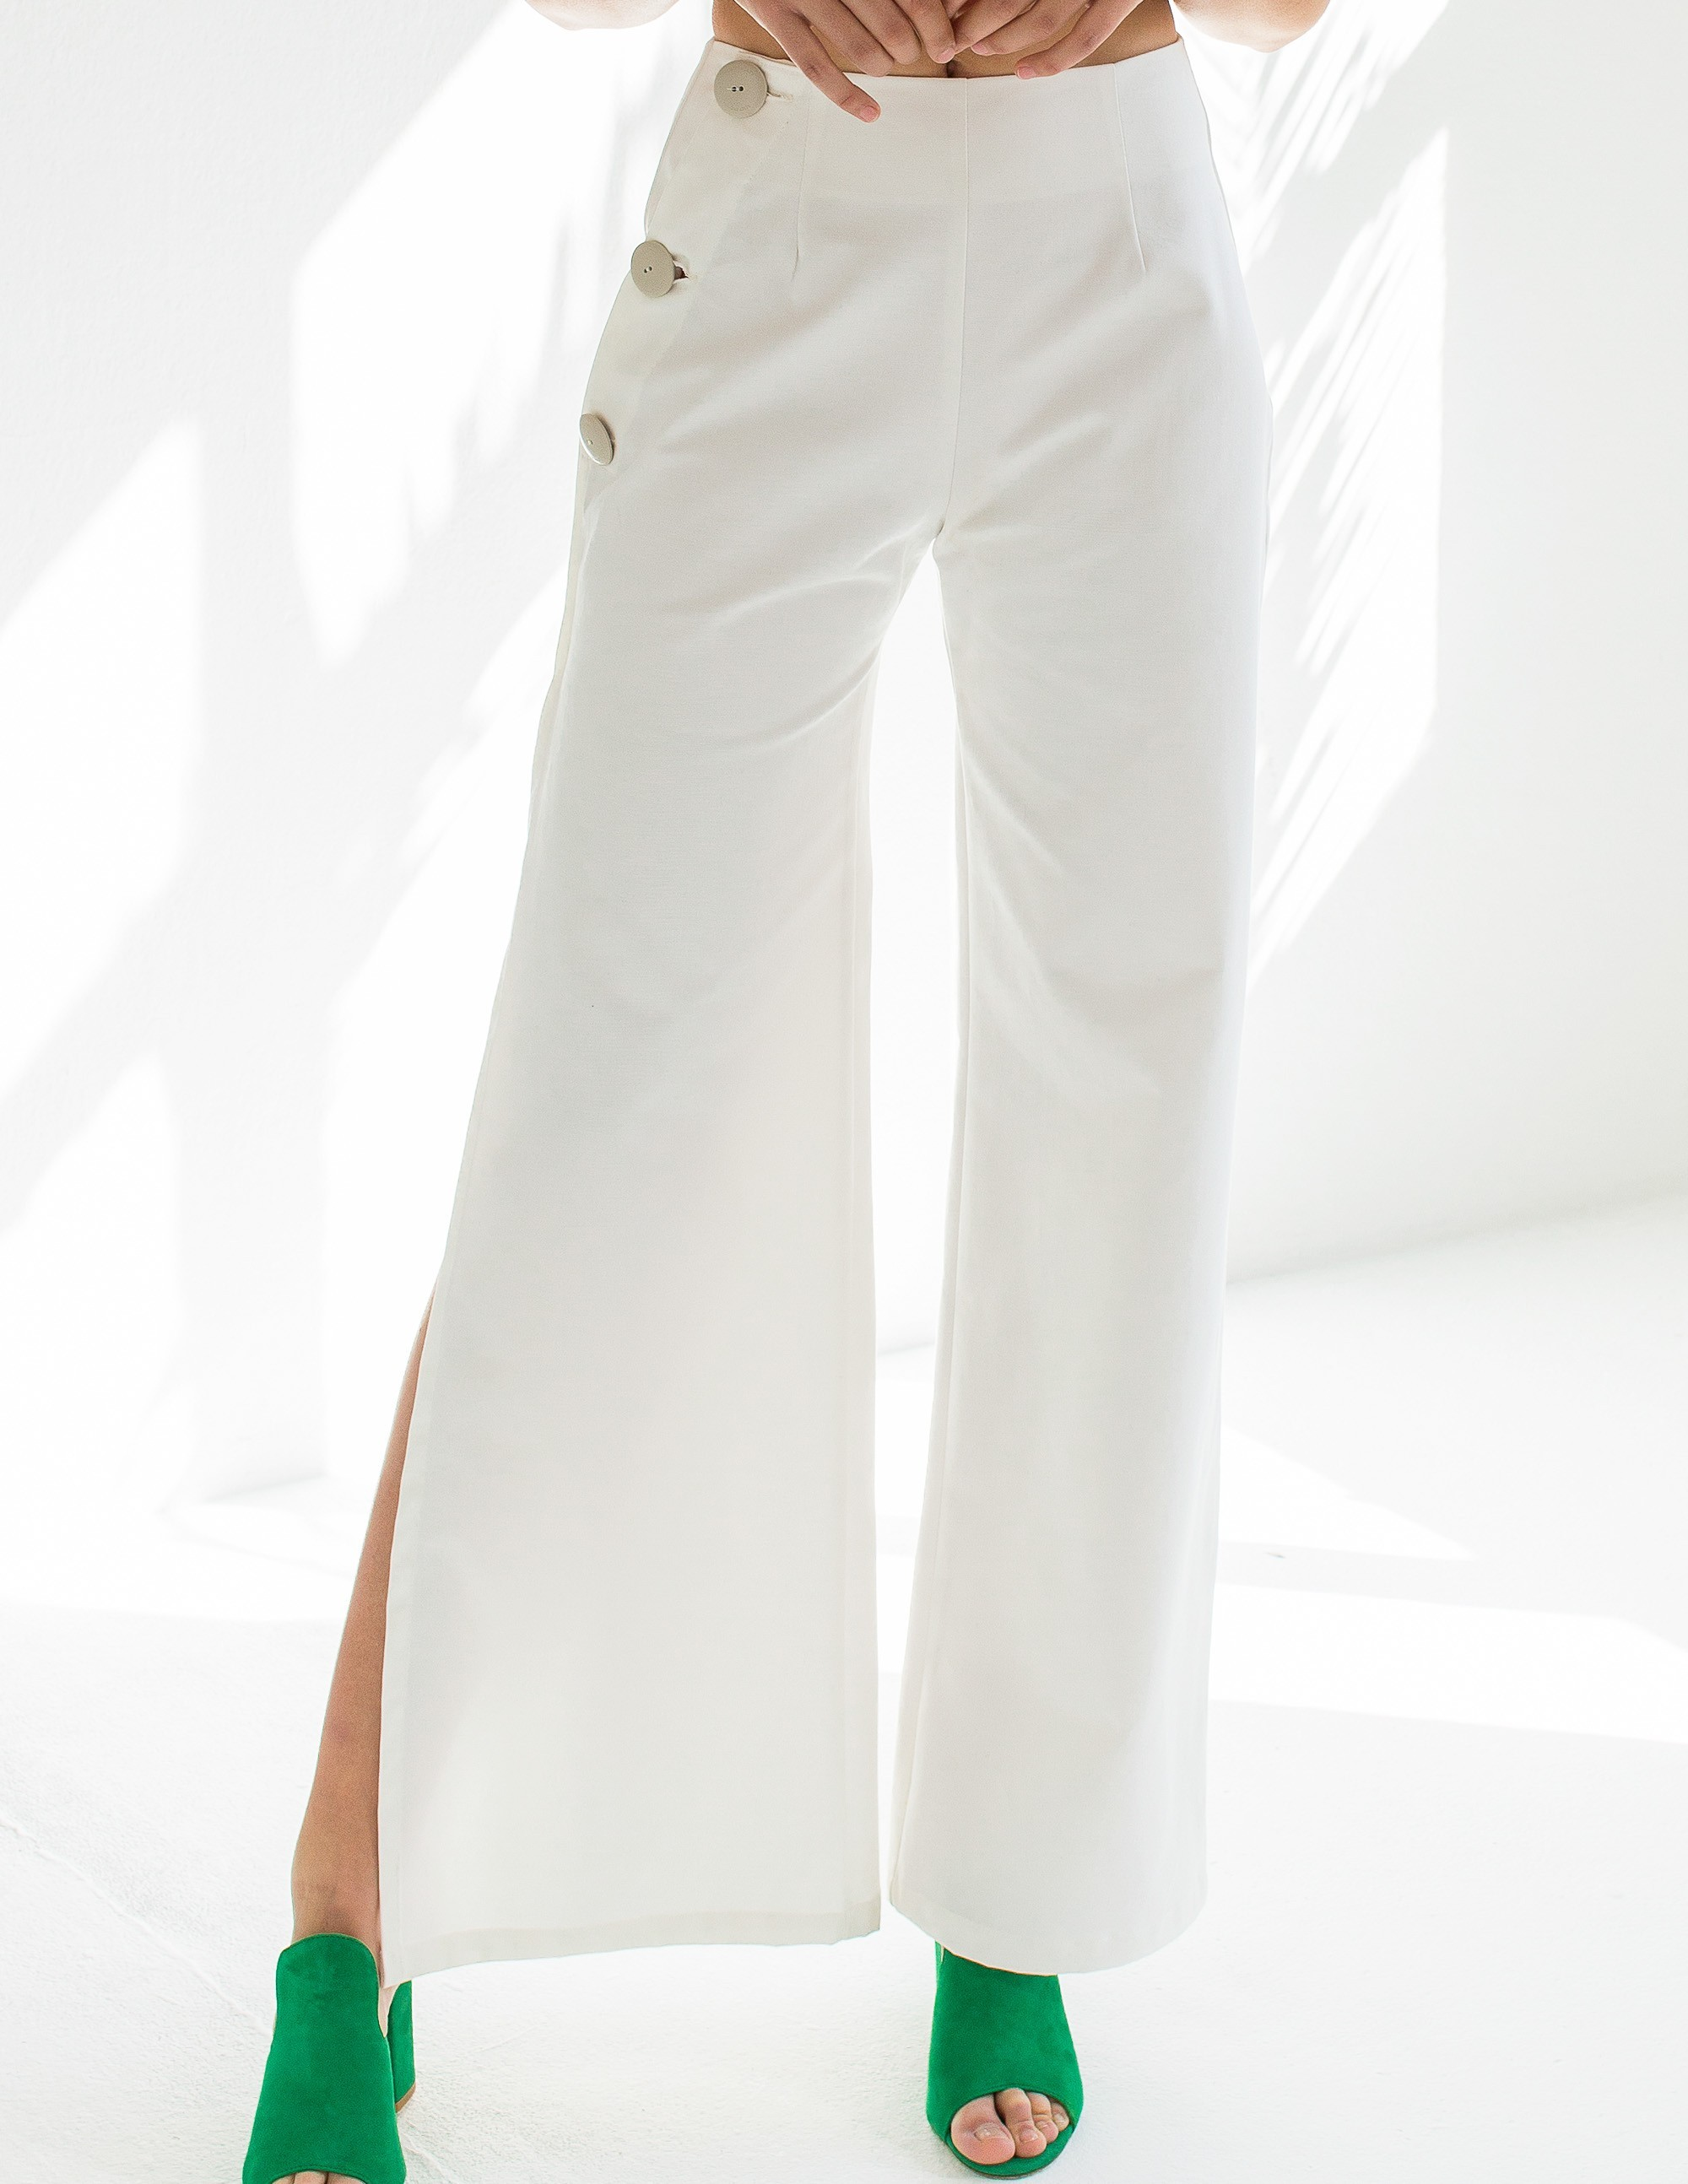 POSITANO trousers - PURE